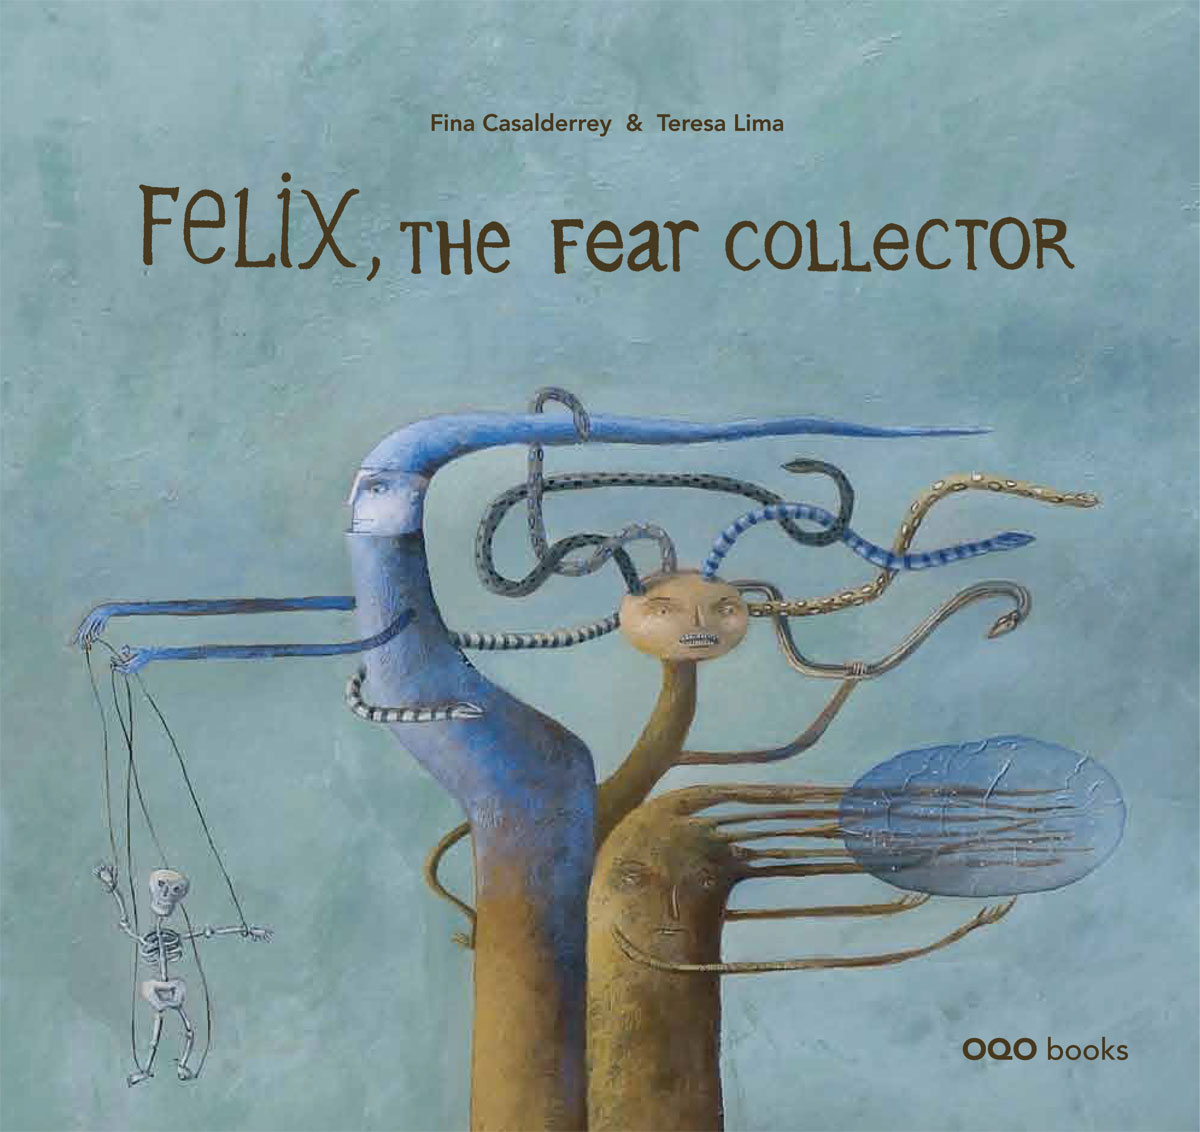 Felix, the Fear Collector